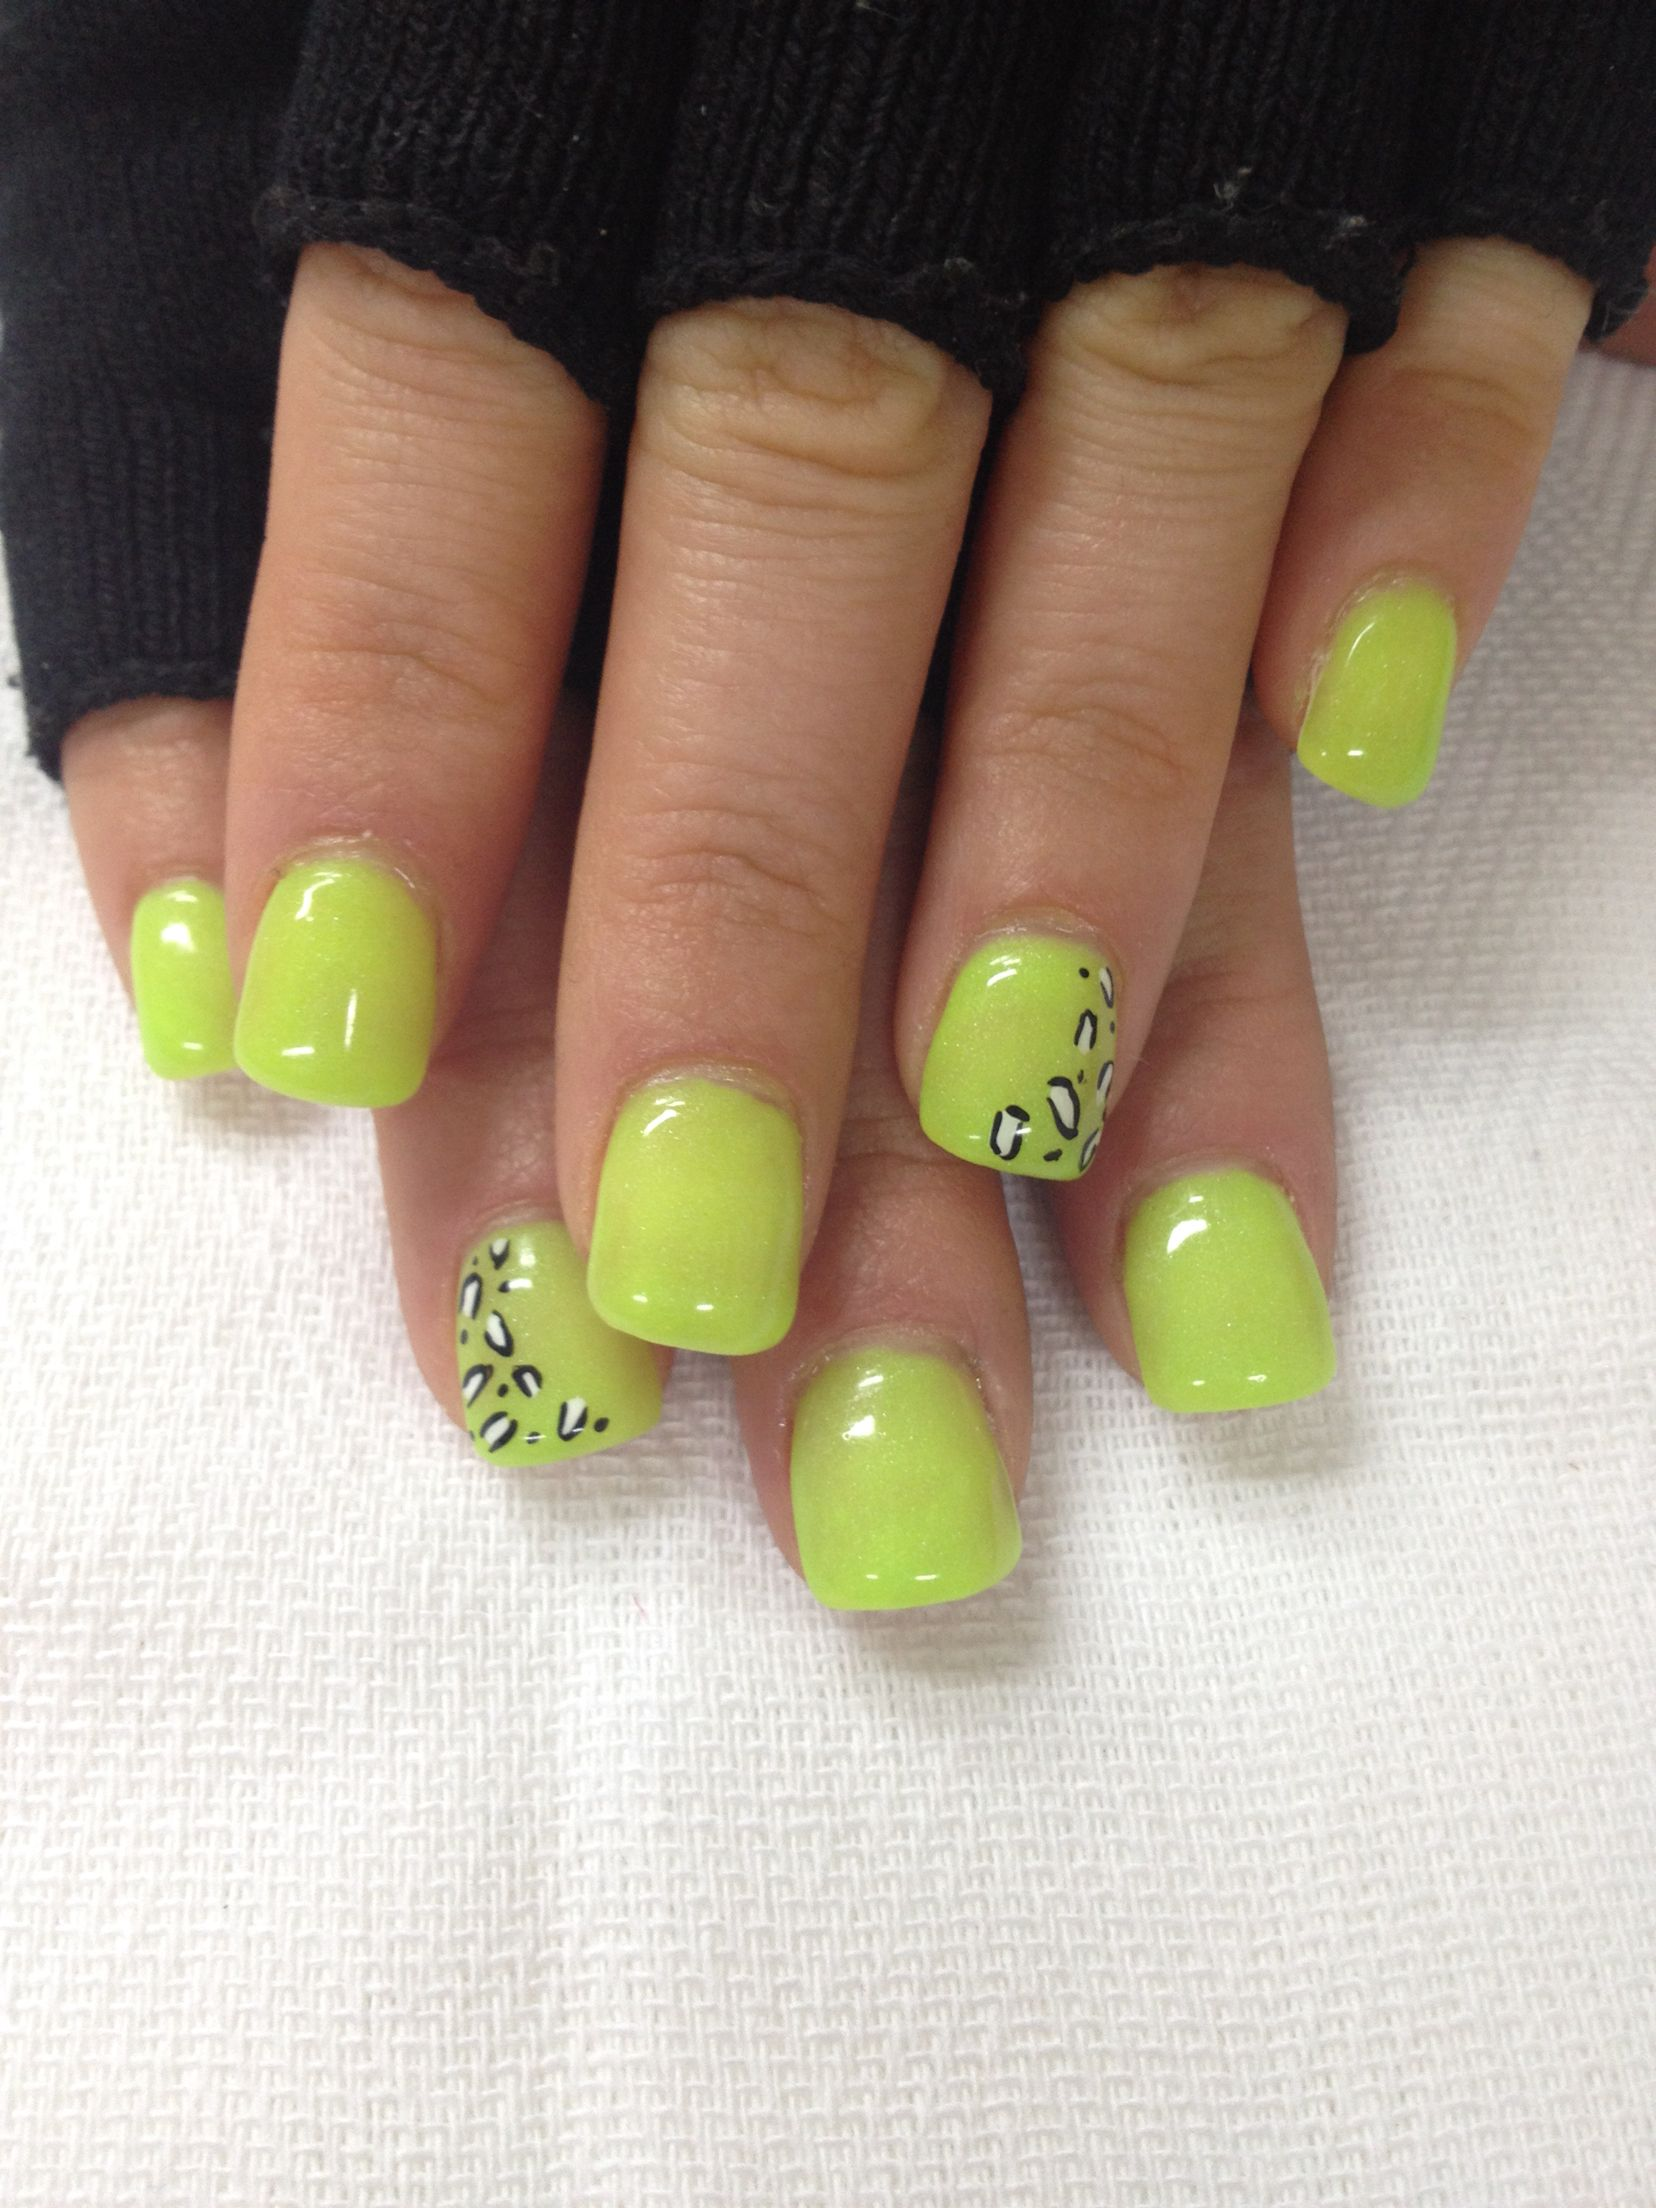 Neon Yellow Green Gel Nails With Leopard Accents All Done With